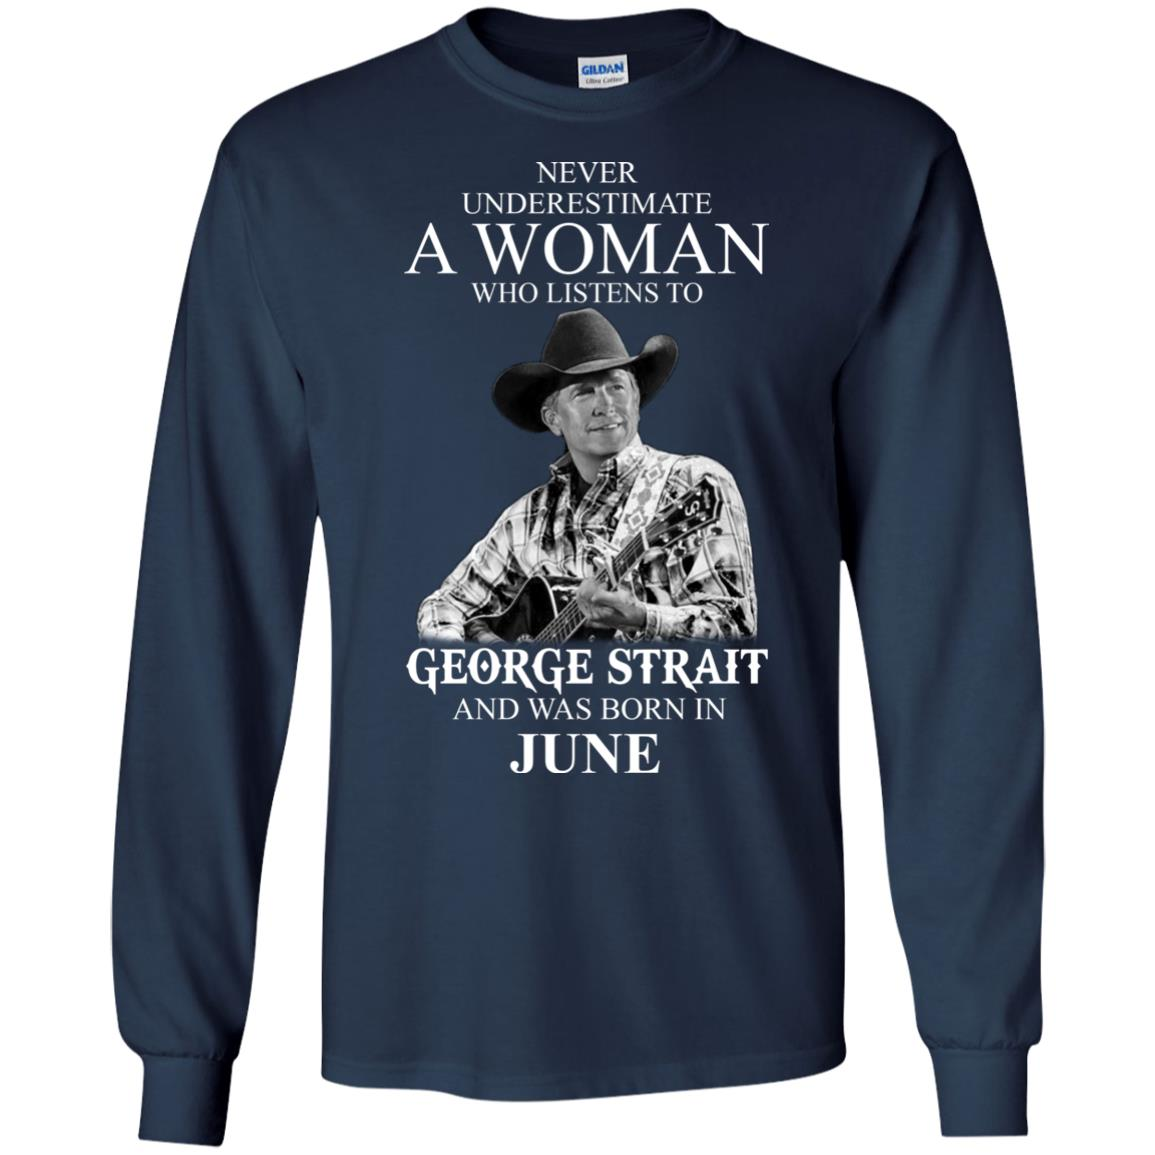 image 485 - Never Underestimate A Woman Who Listens To George Strait And Was Born In June shirt